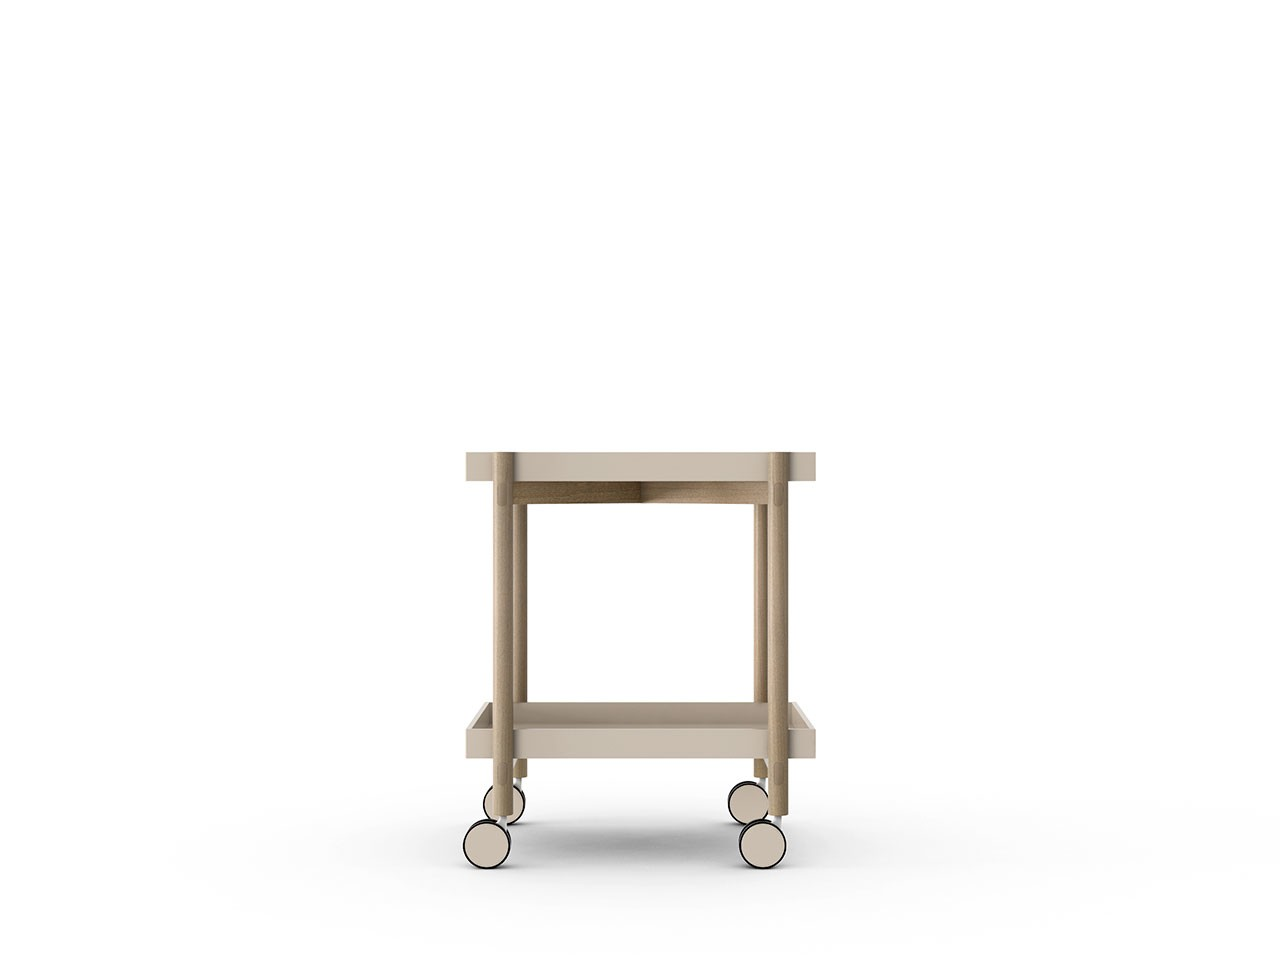 Mai Tai Trolley Sand Texturised Lacquered, Whitened Oak